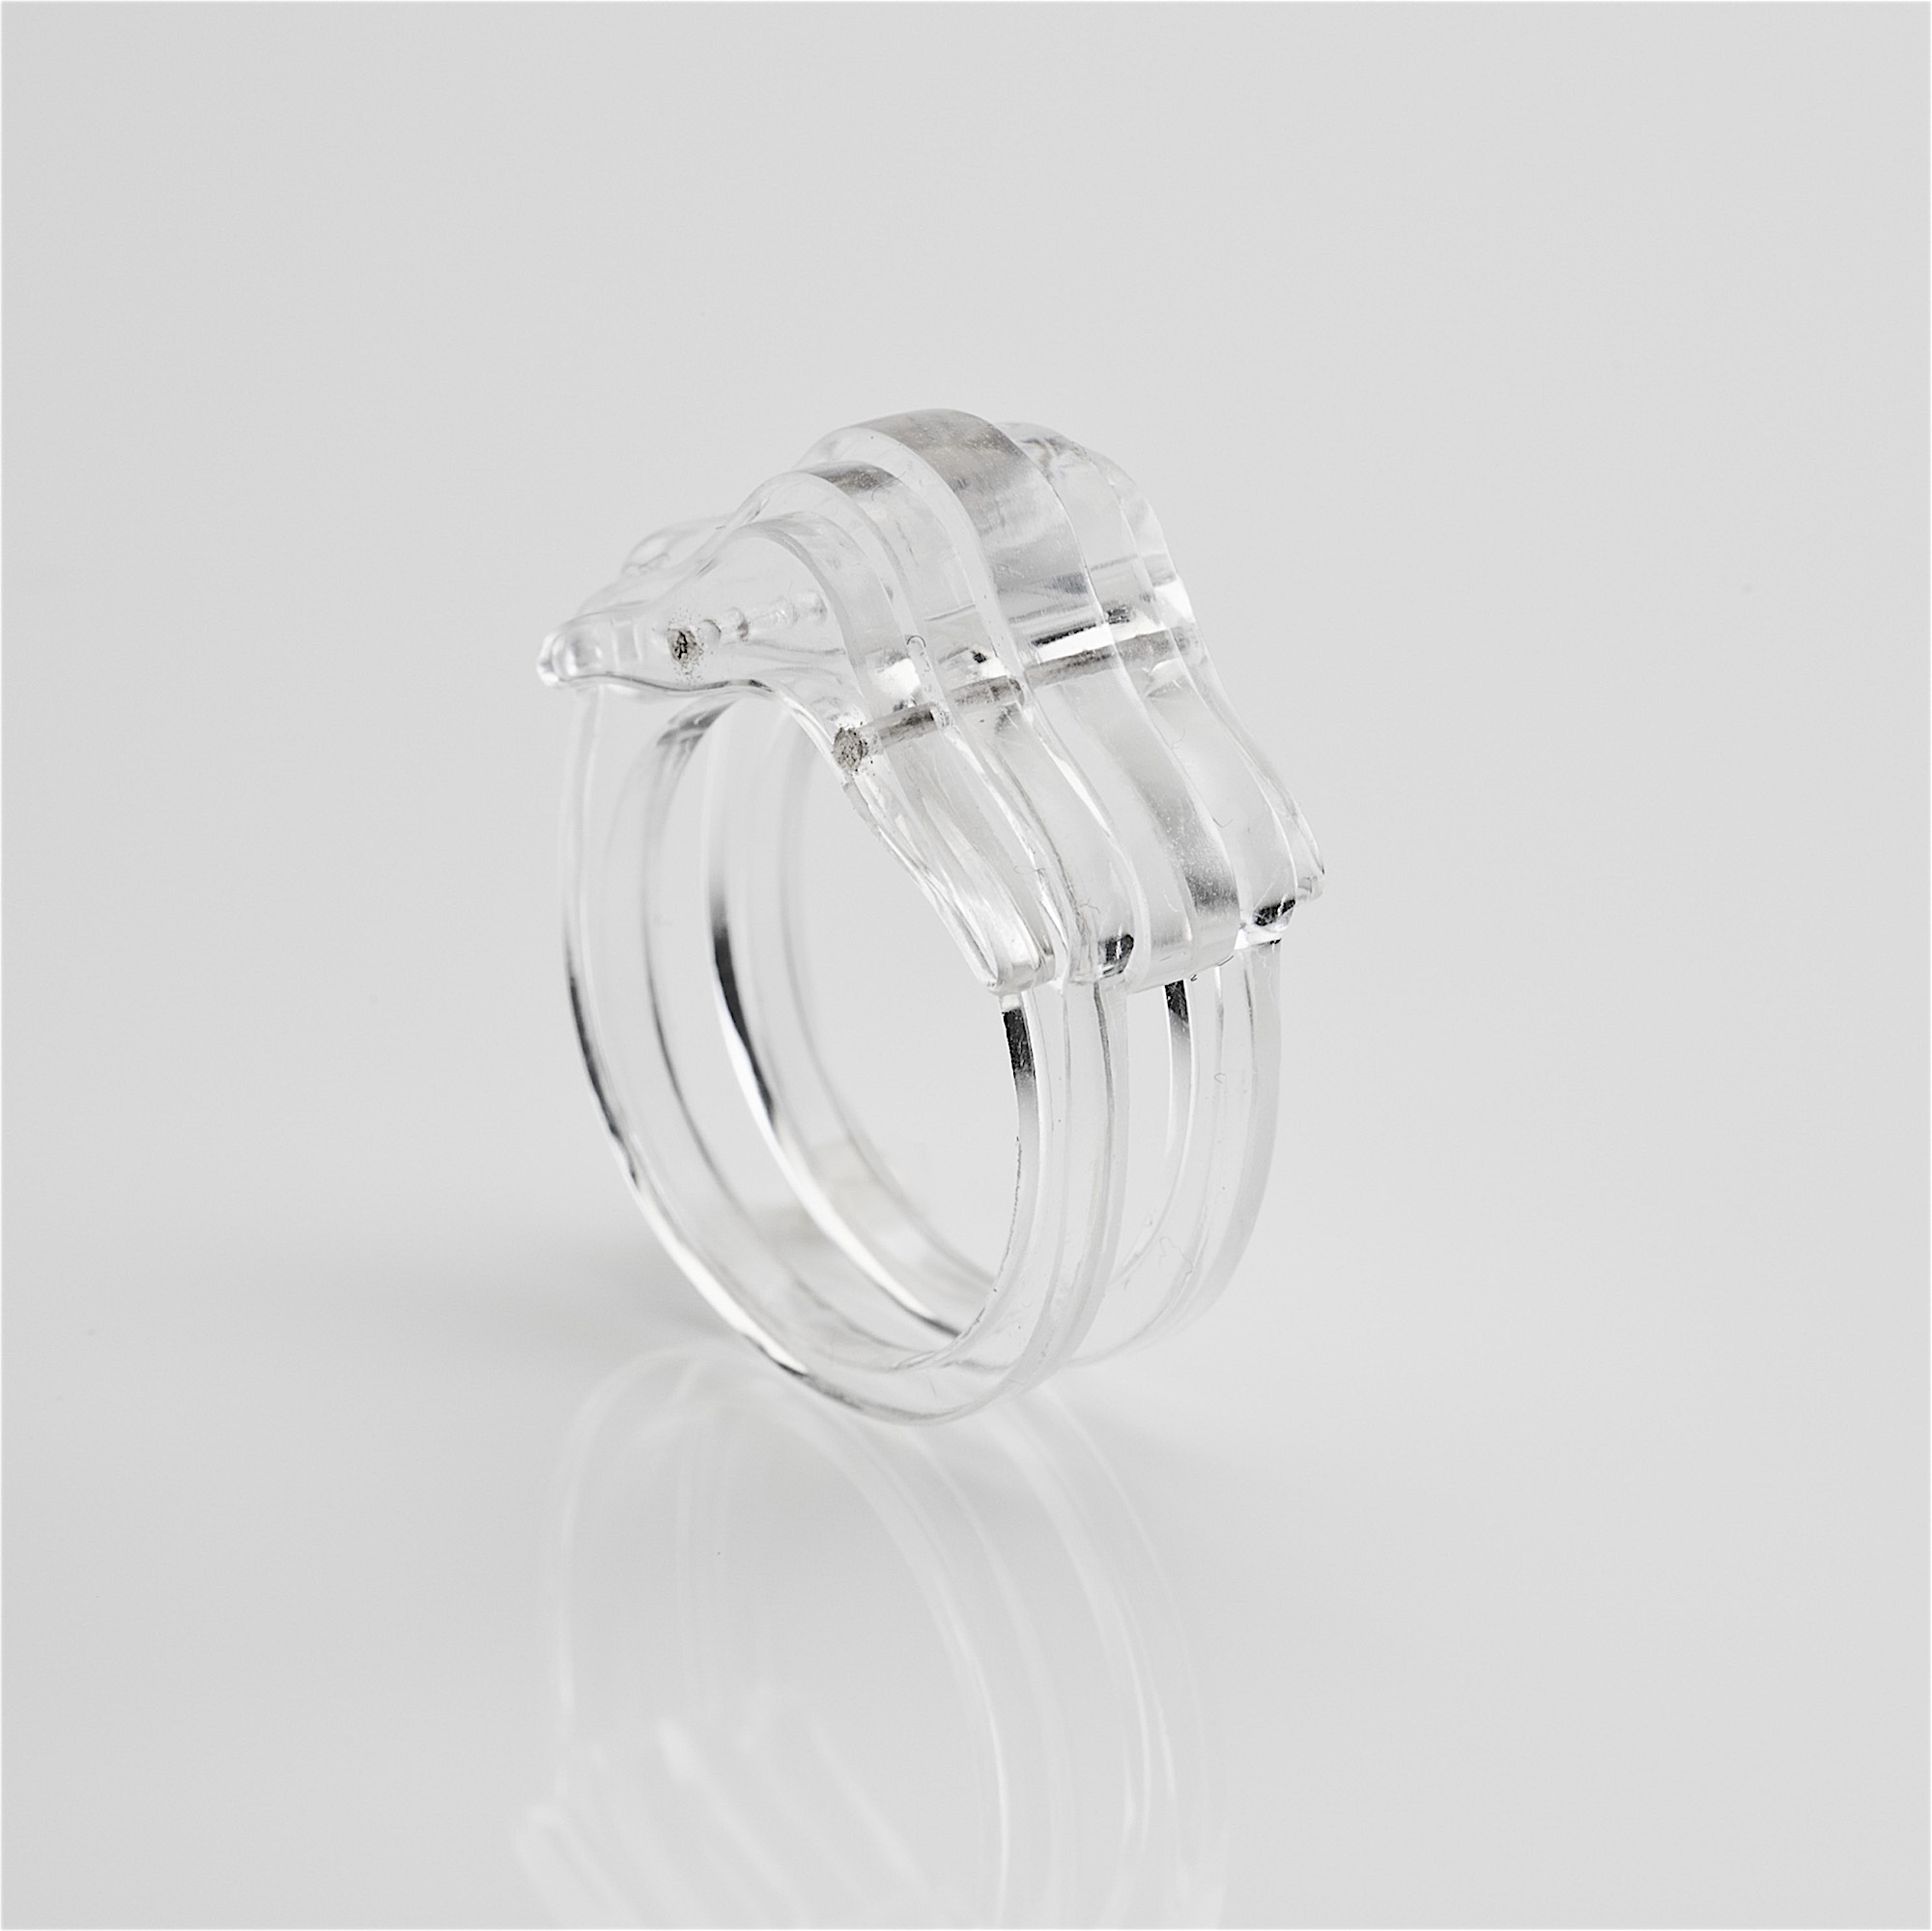 ghost transparent ring layered movement.jpg